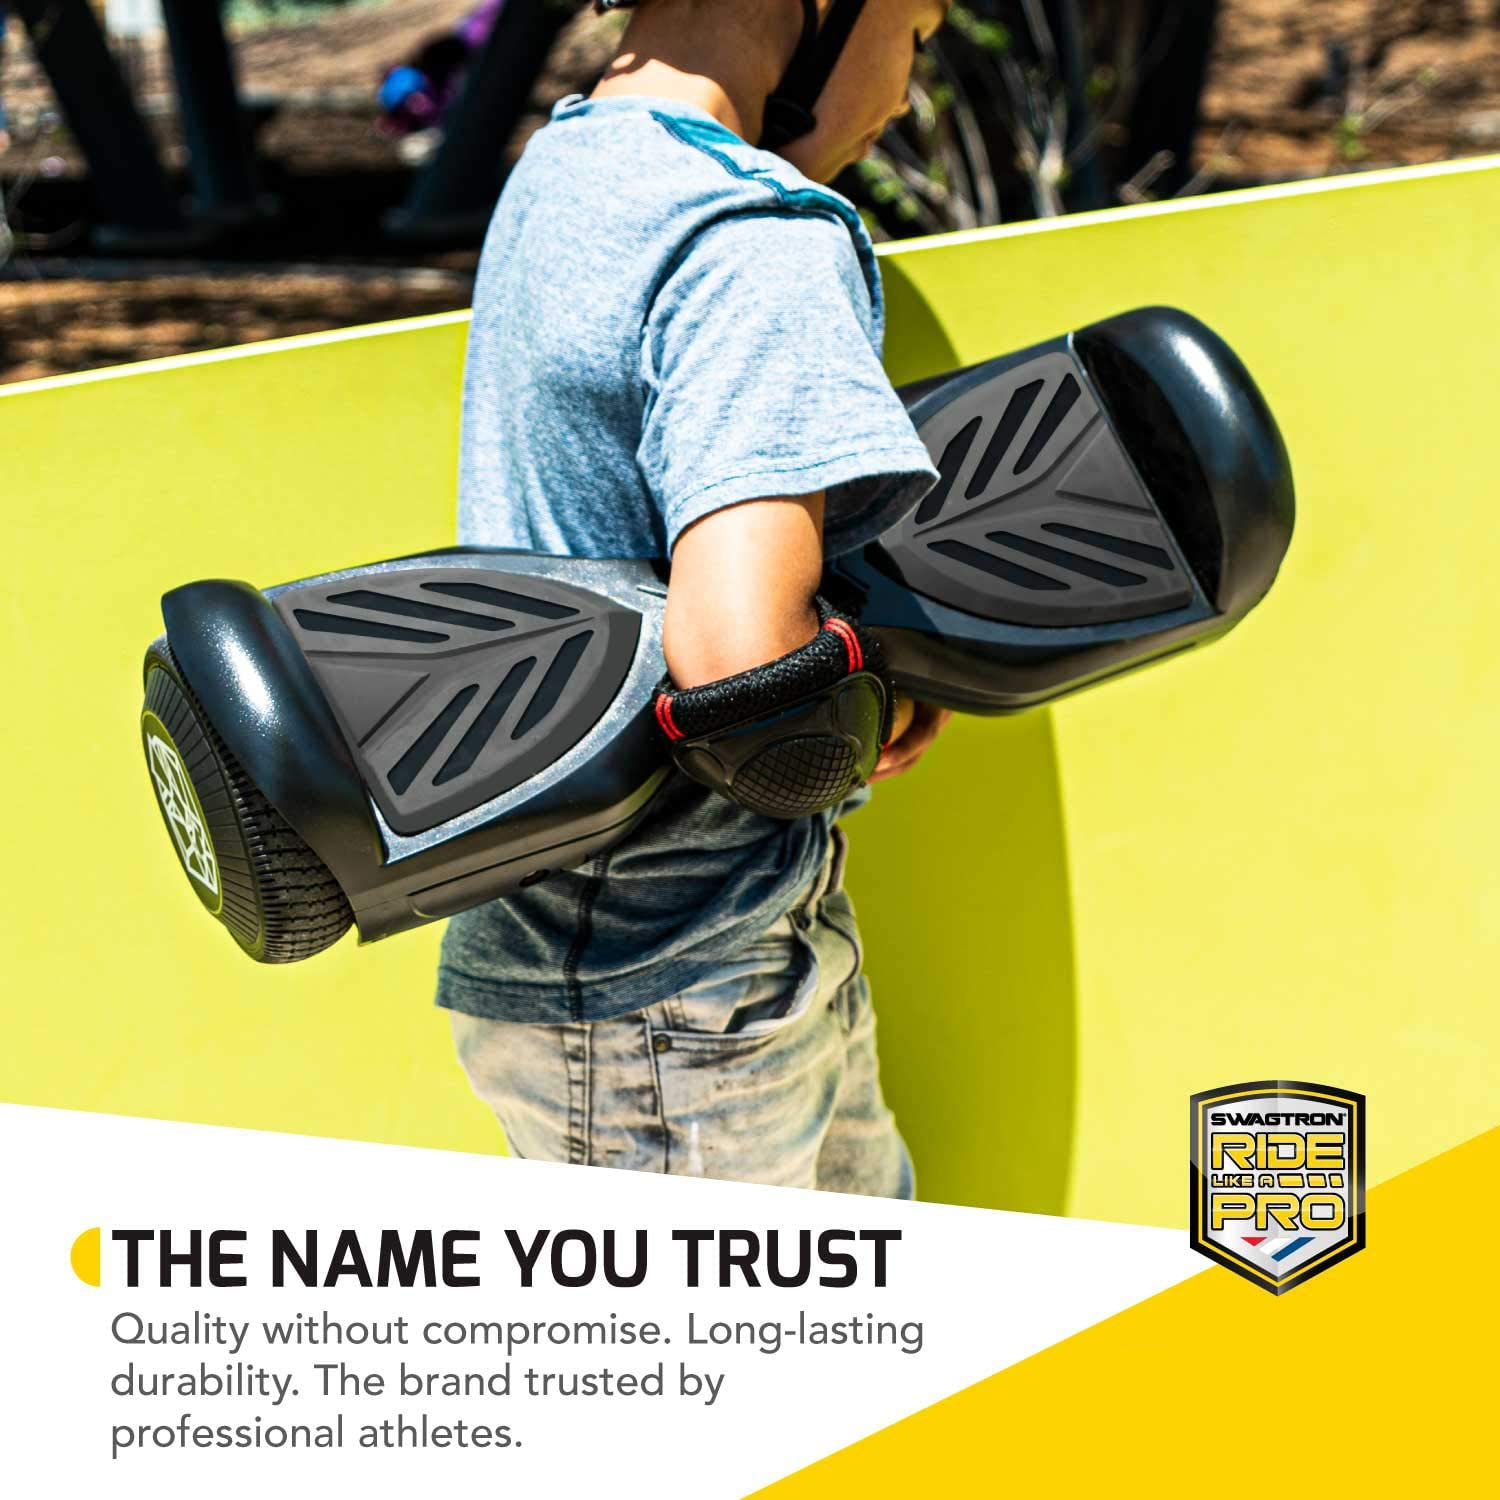 Swagboard Twist Lithium-Free Kids Hoverboard - 5